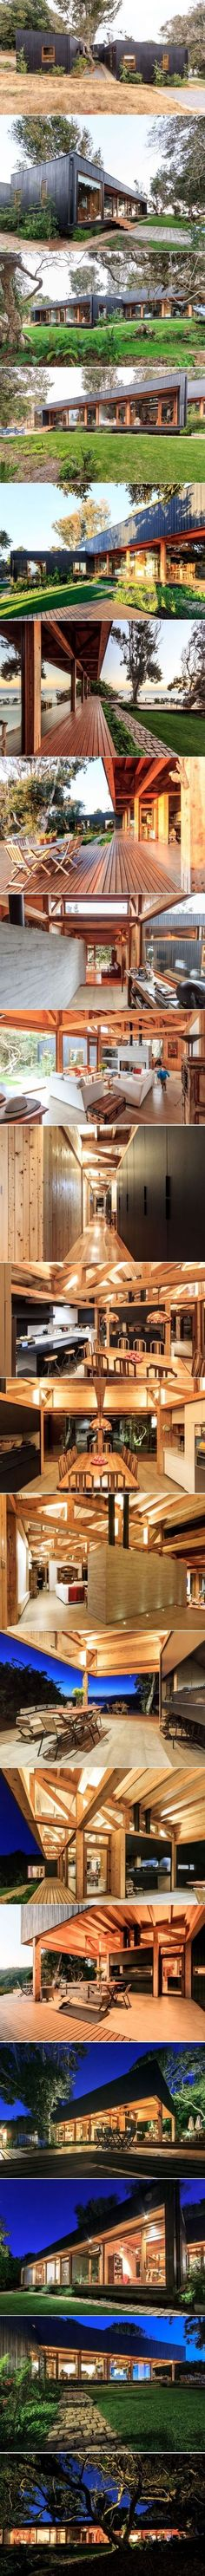 Prado Arquitectos Designs a Cozy Home in Hualpén, Chile | HomeDSGN With rising cost of building, more and more people want to do DIY projects. One of the easies ways is to add Shiiping Container Homes to your DIY list.